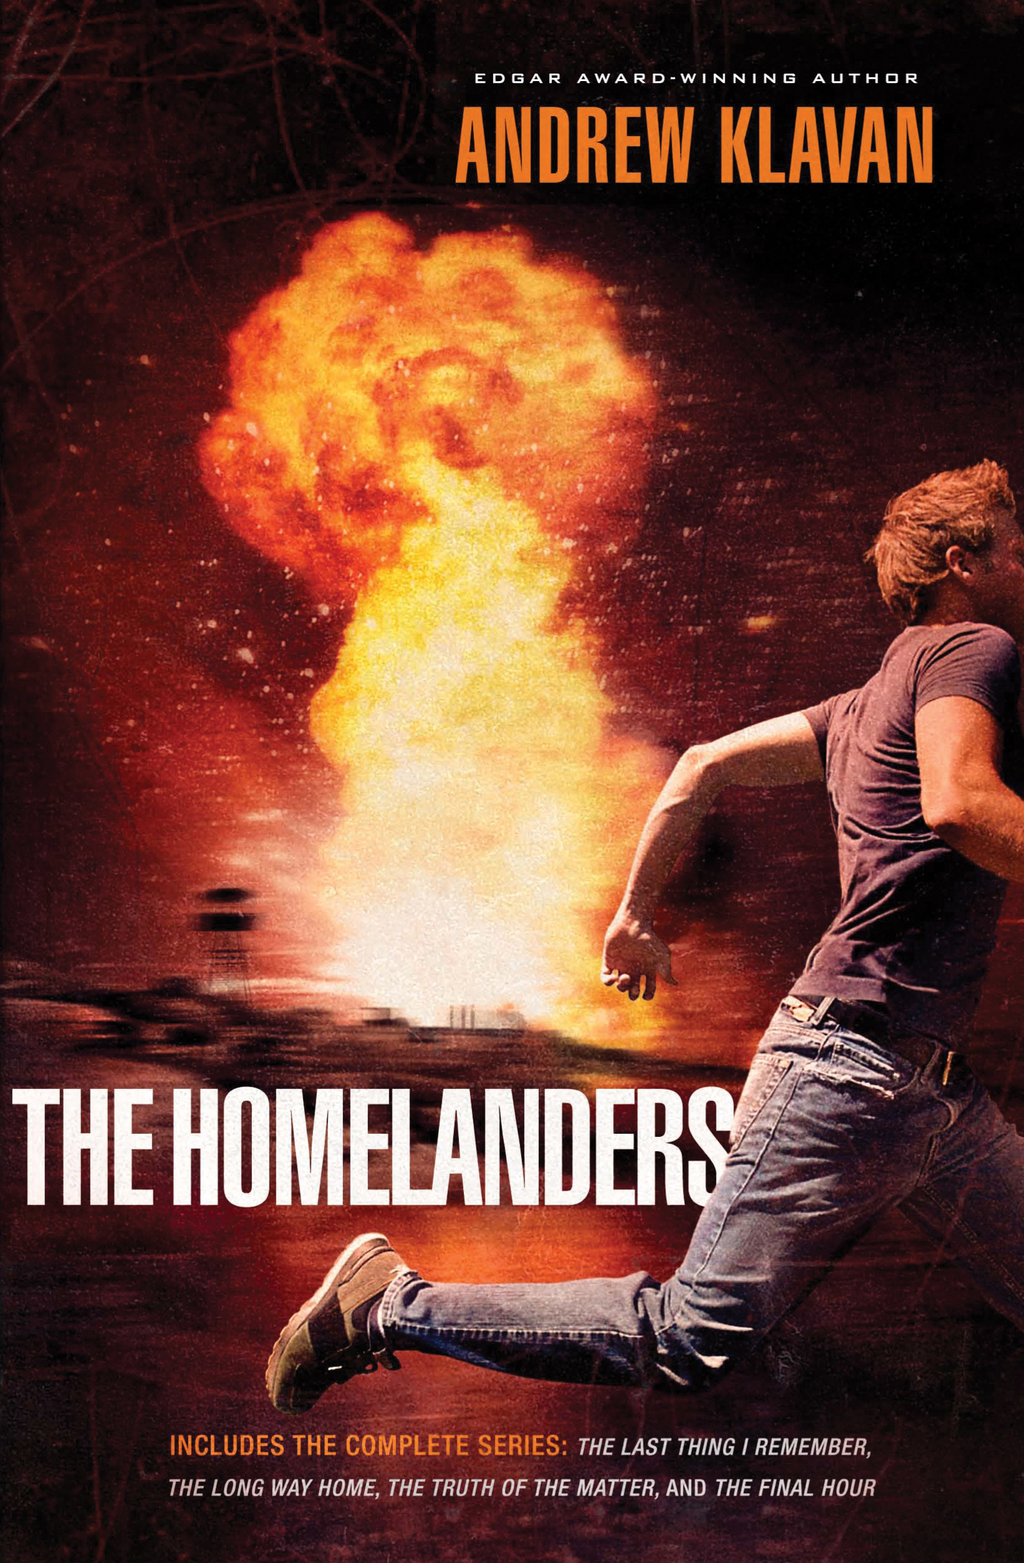 The Homelanders By: Andrew Klavan